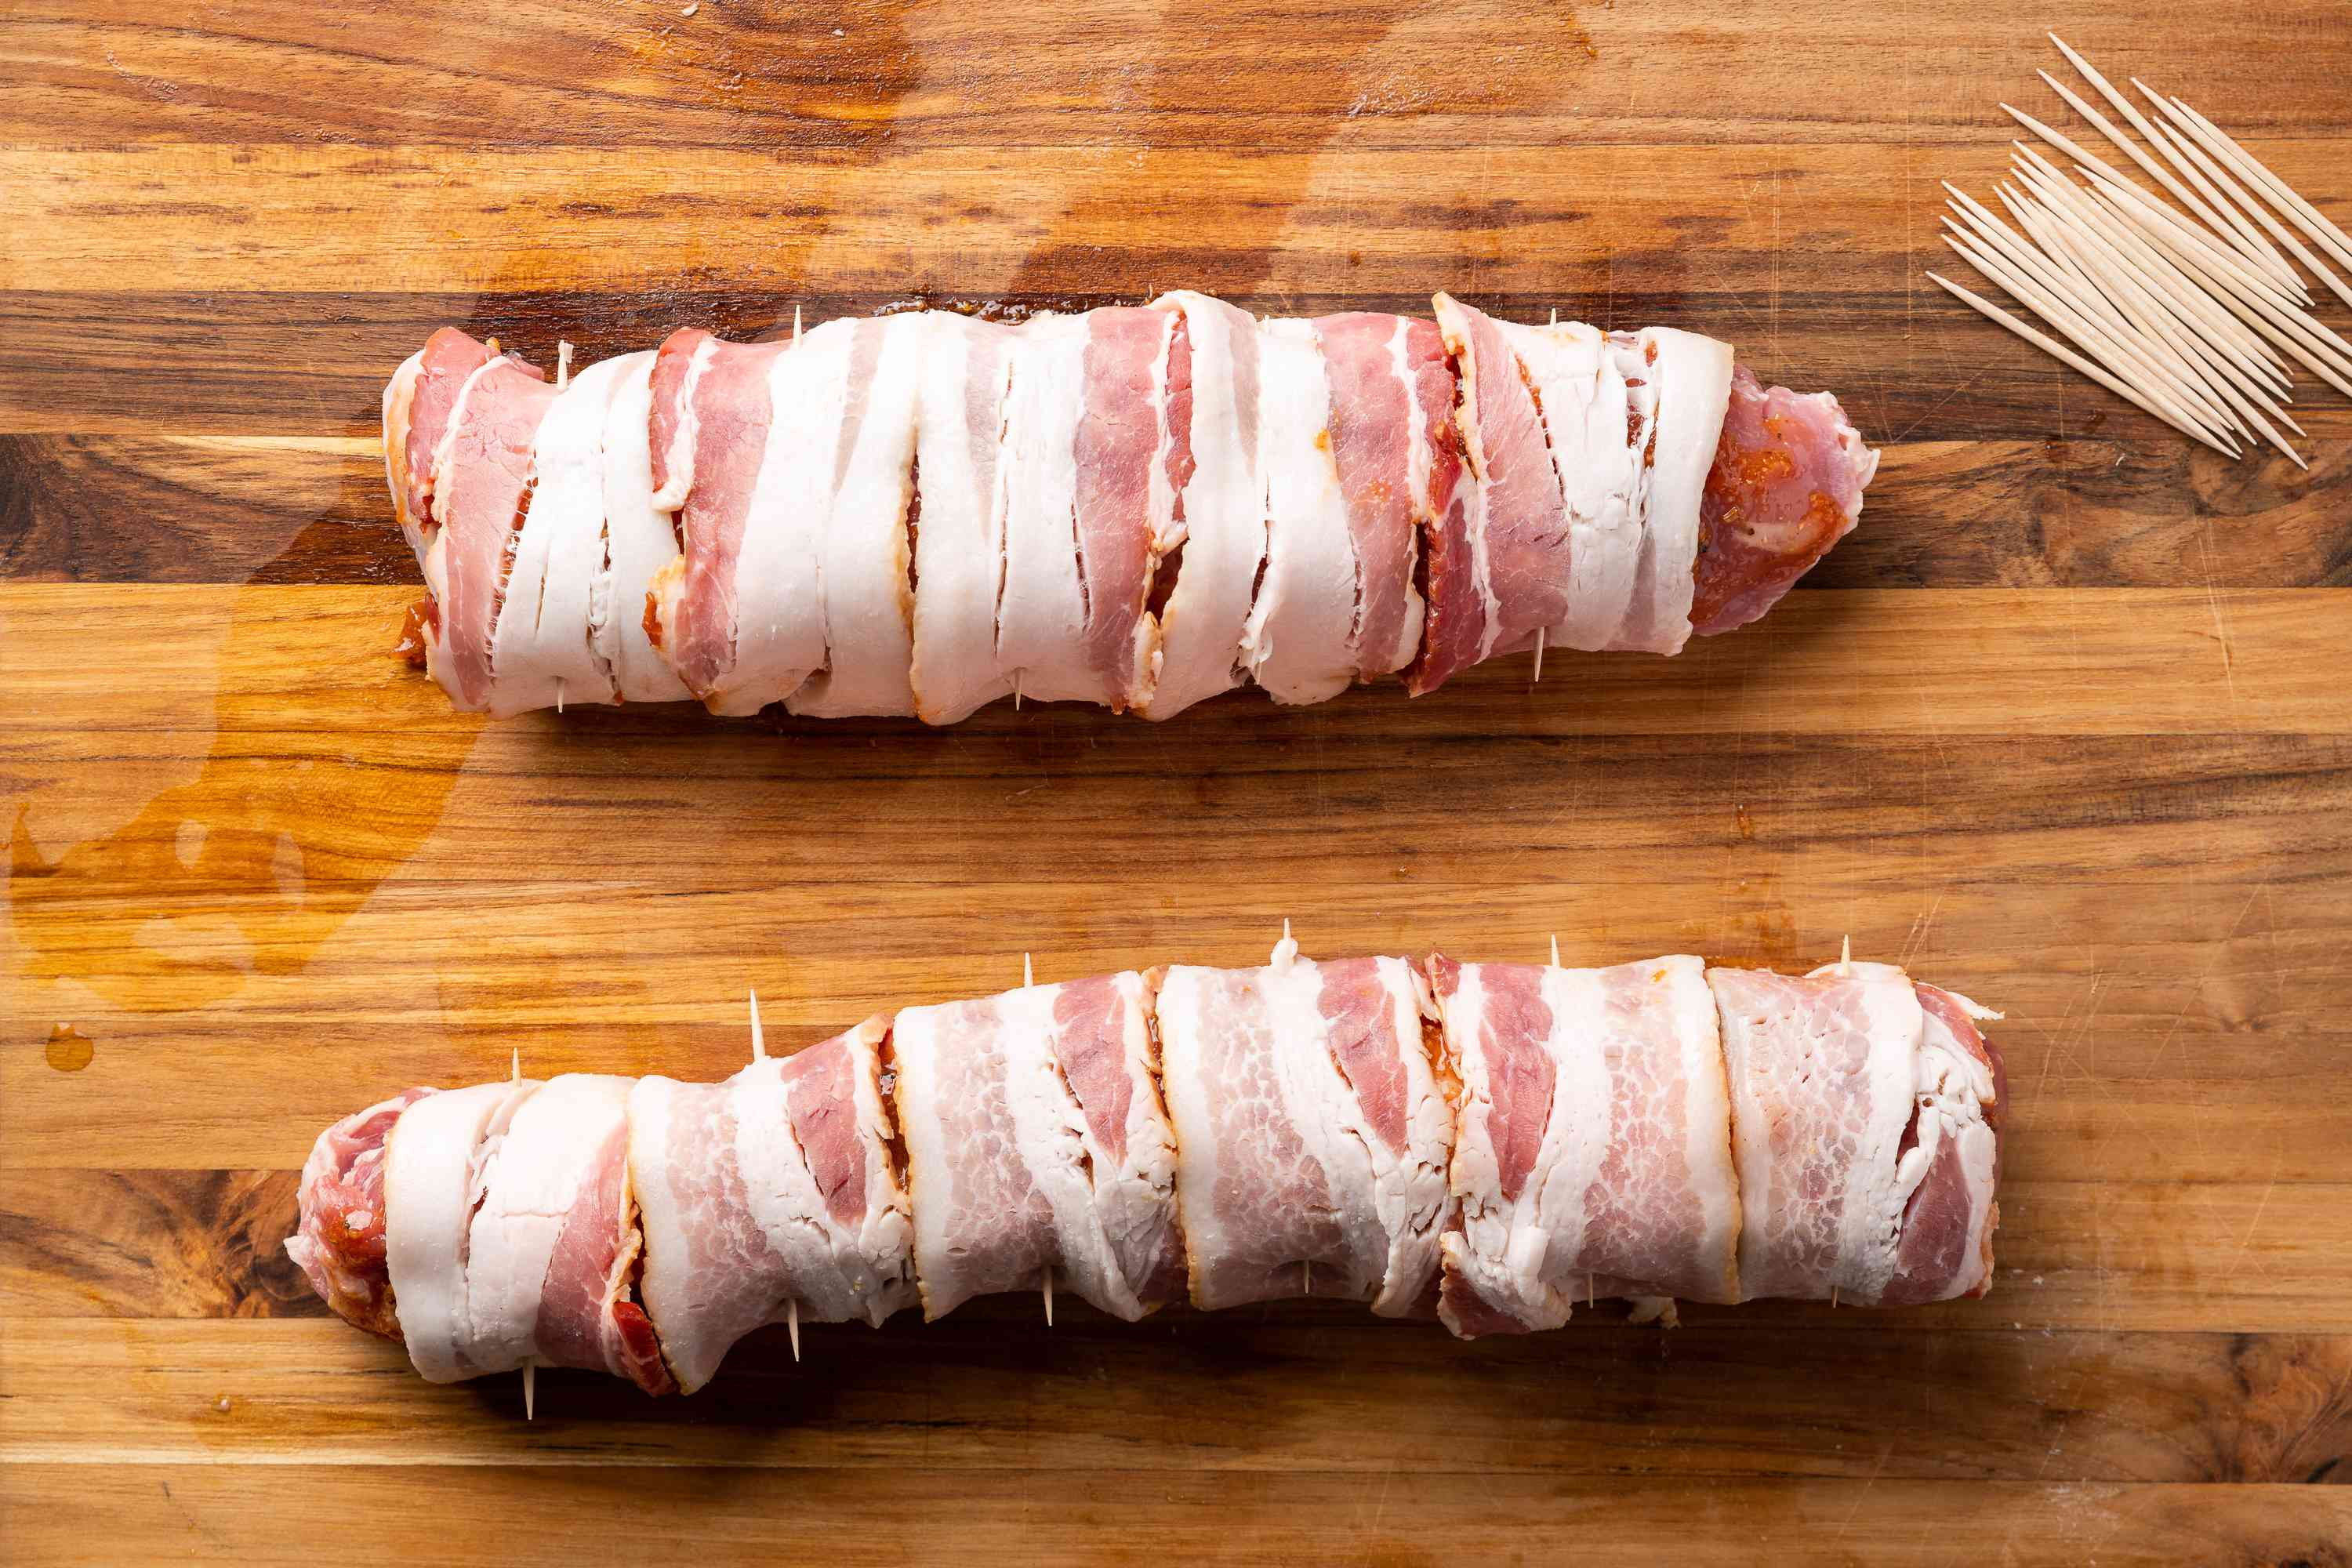 Cut bacon slices in half and wrap around the pork, secure with toothpicks